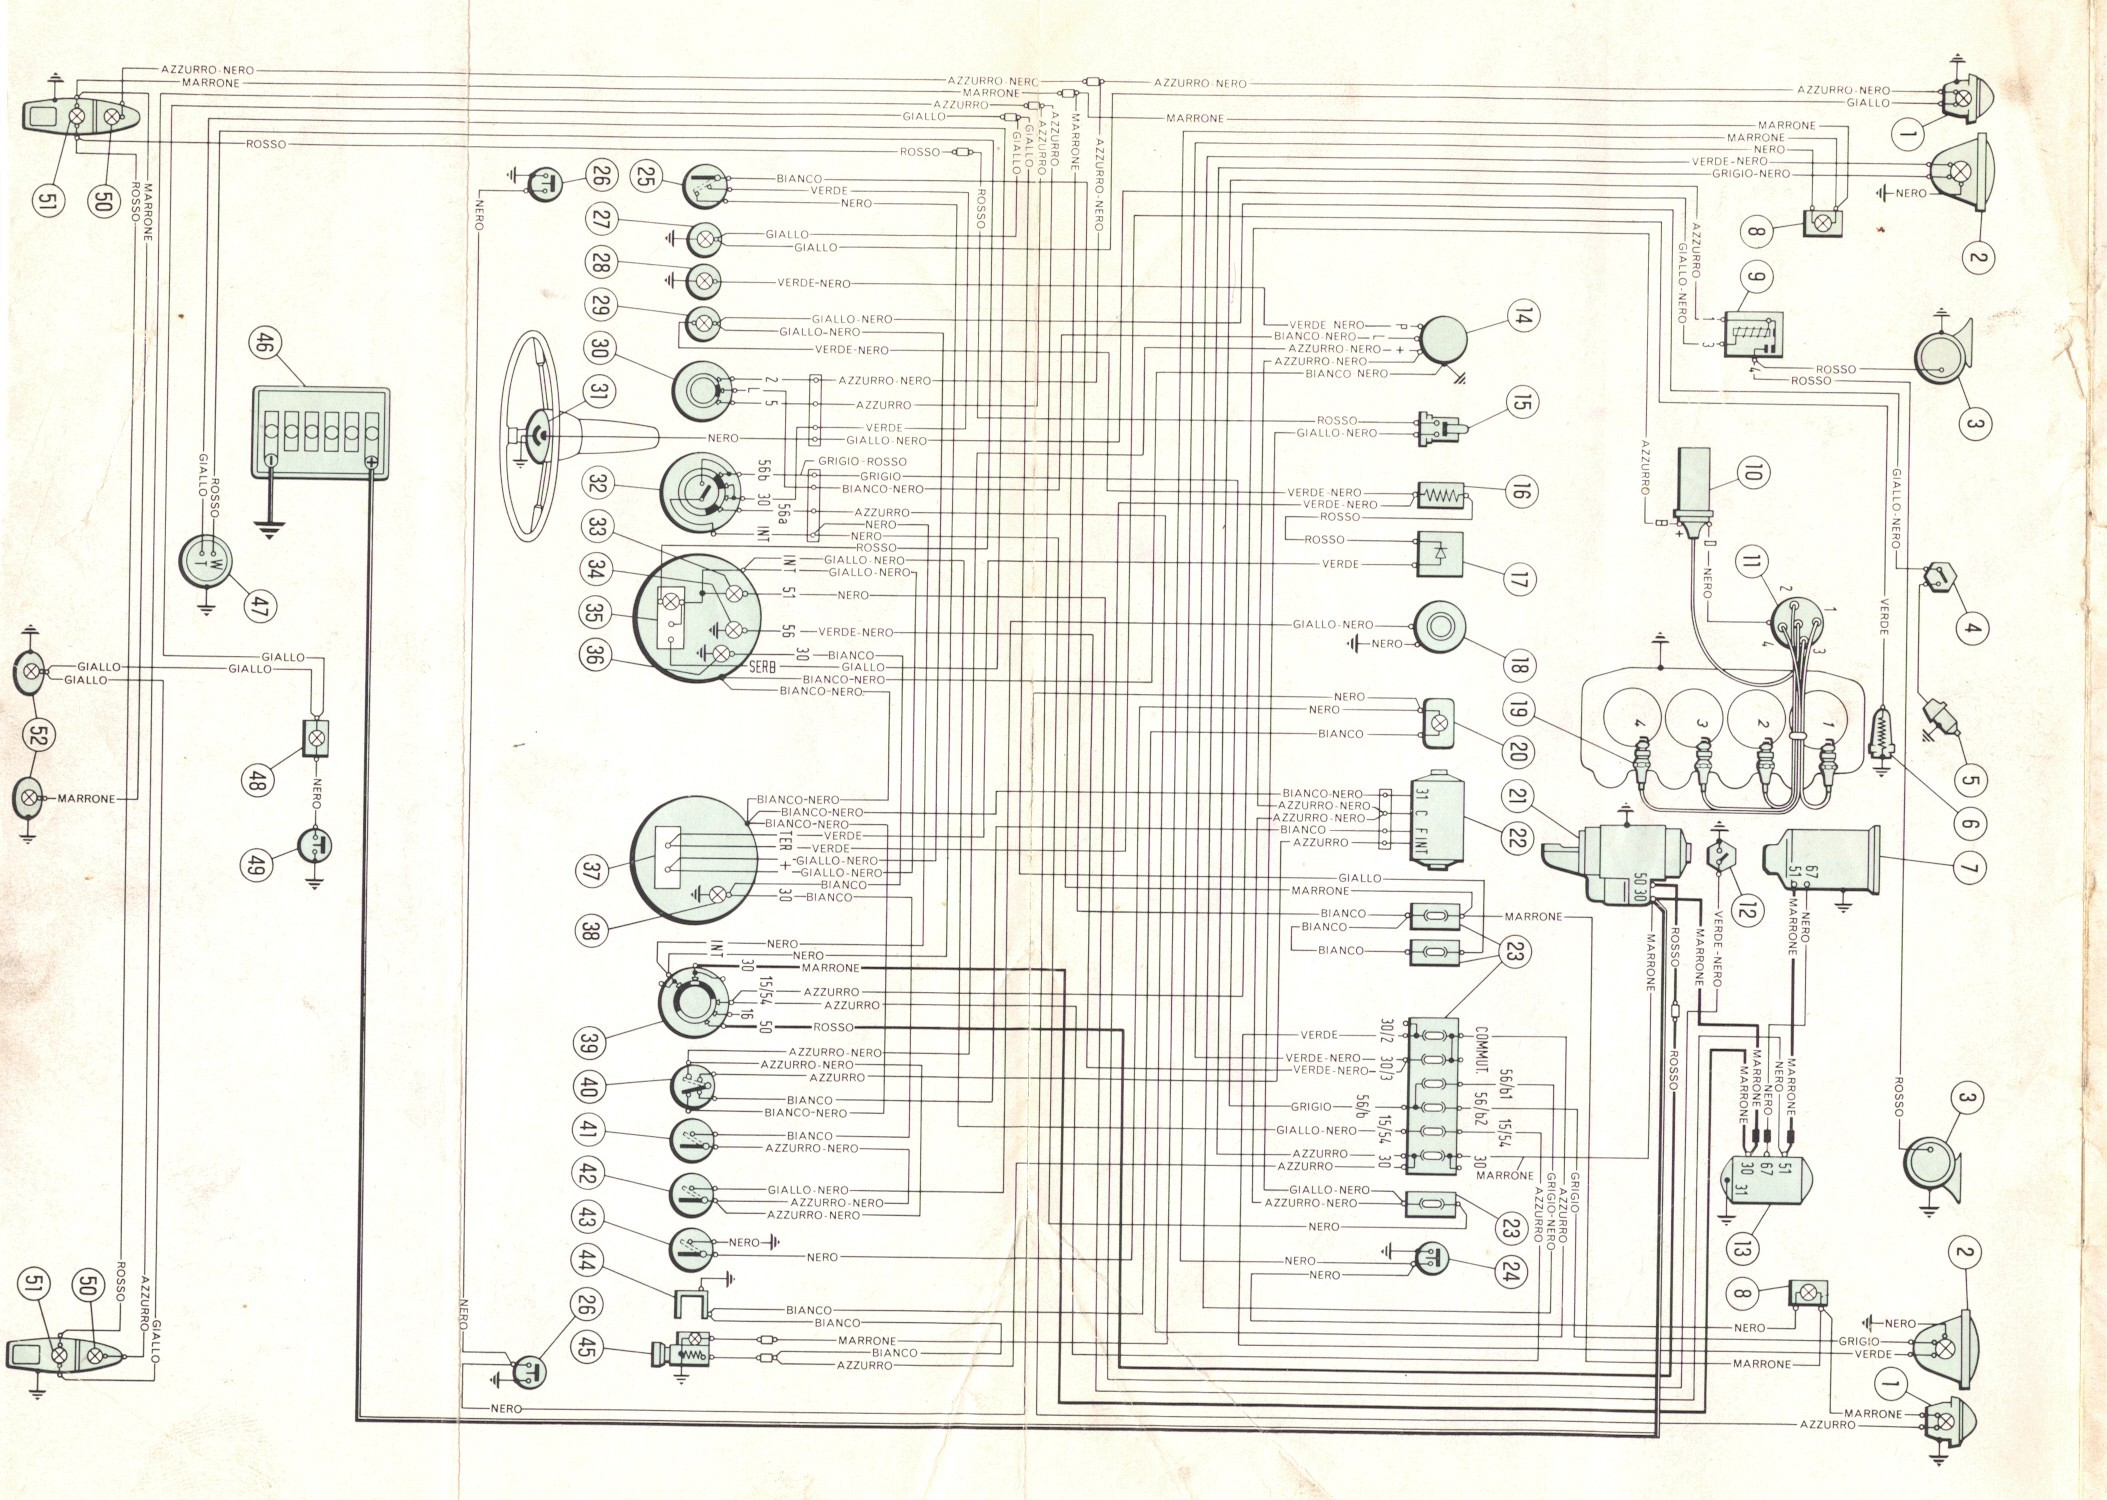 Fiat Uno Engine Diagram Wiring Diagram for 1973 Fiat 128 Wiring Data Of Fiat  Uno Engine